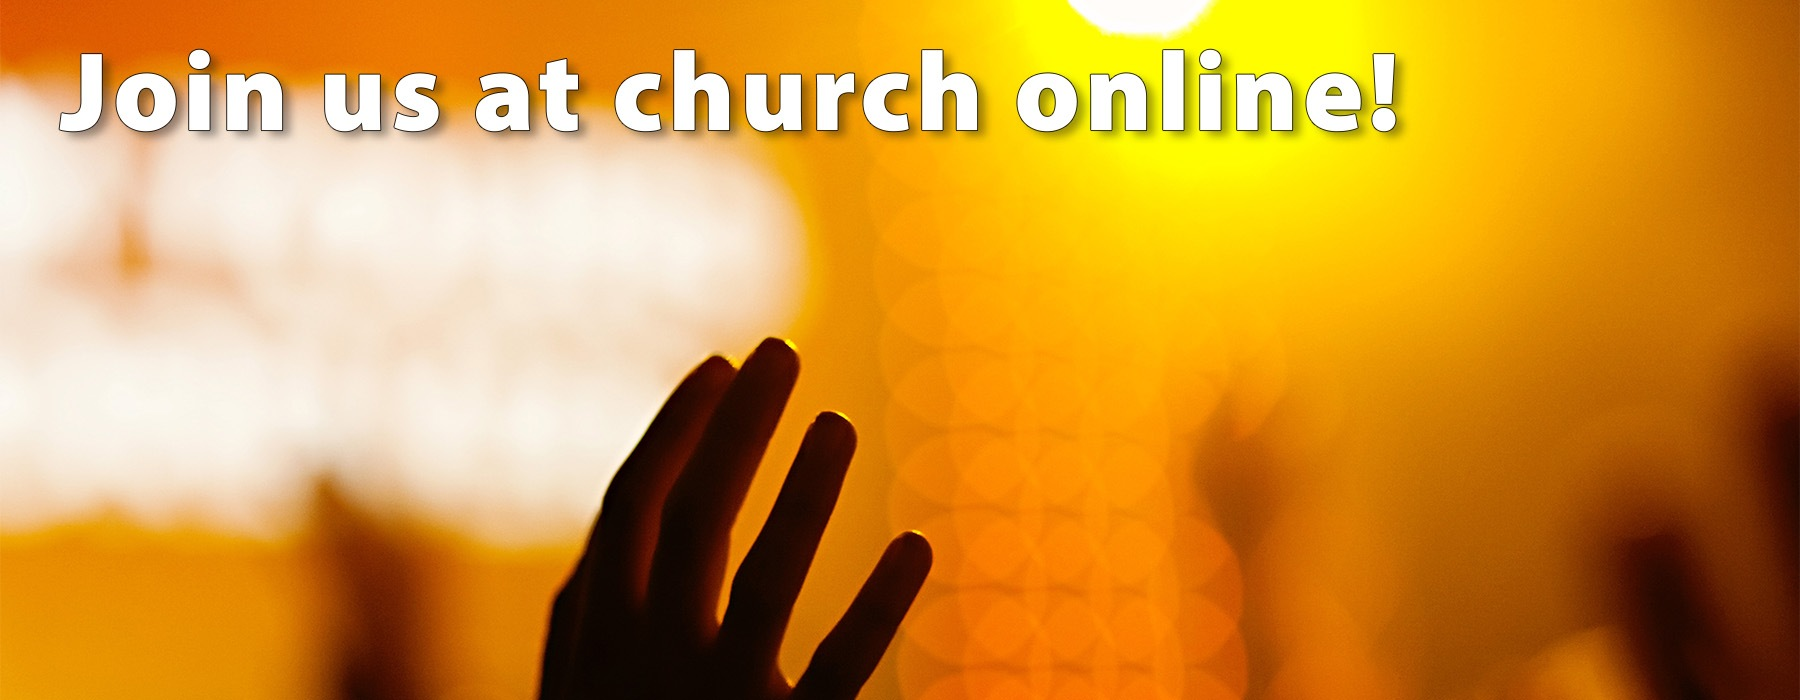 Join us at church online